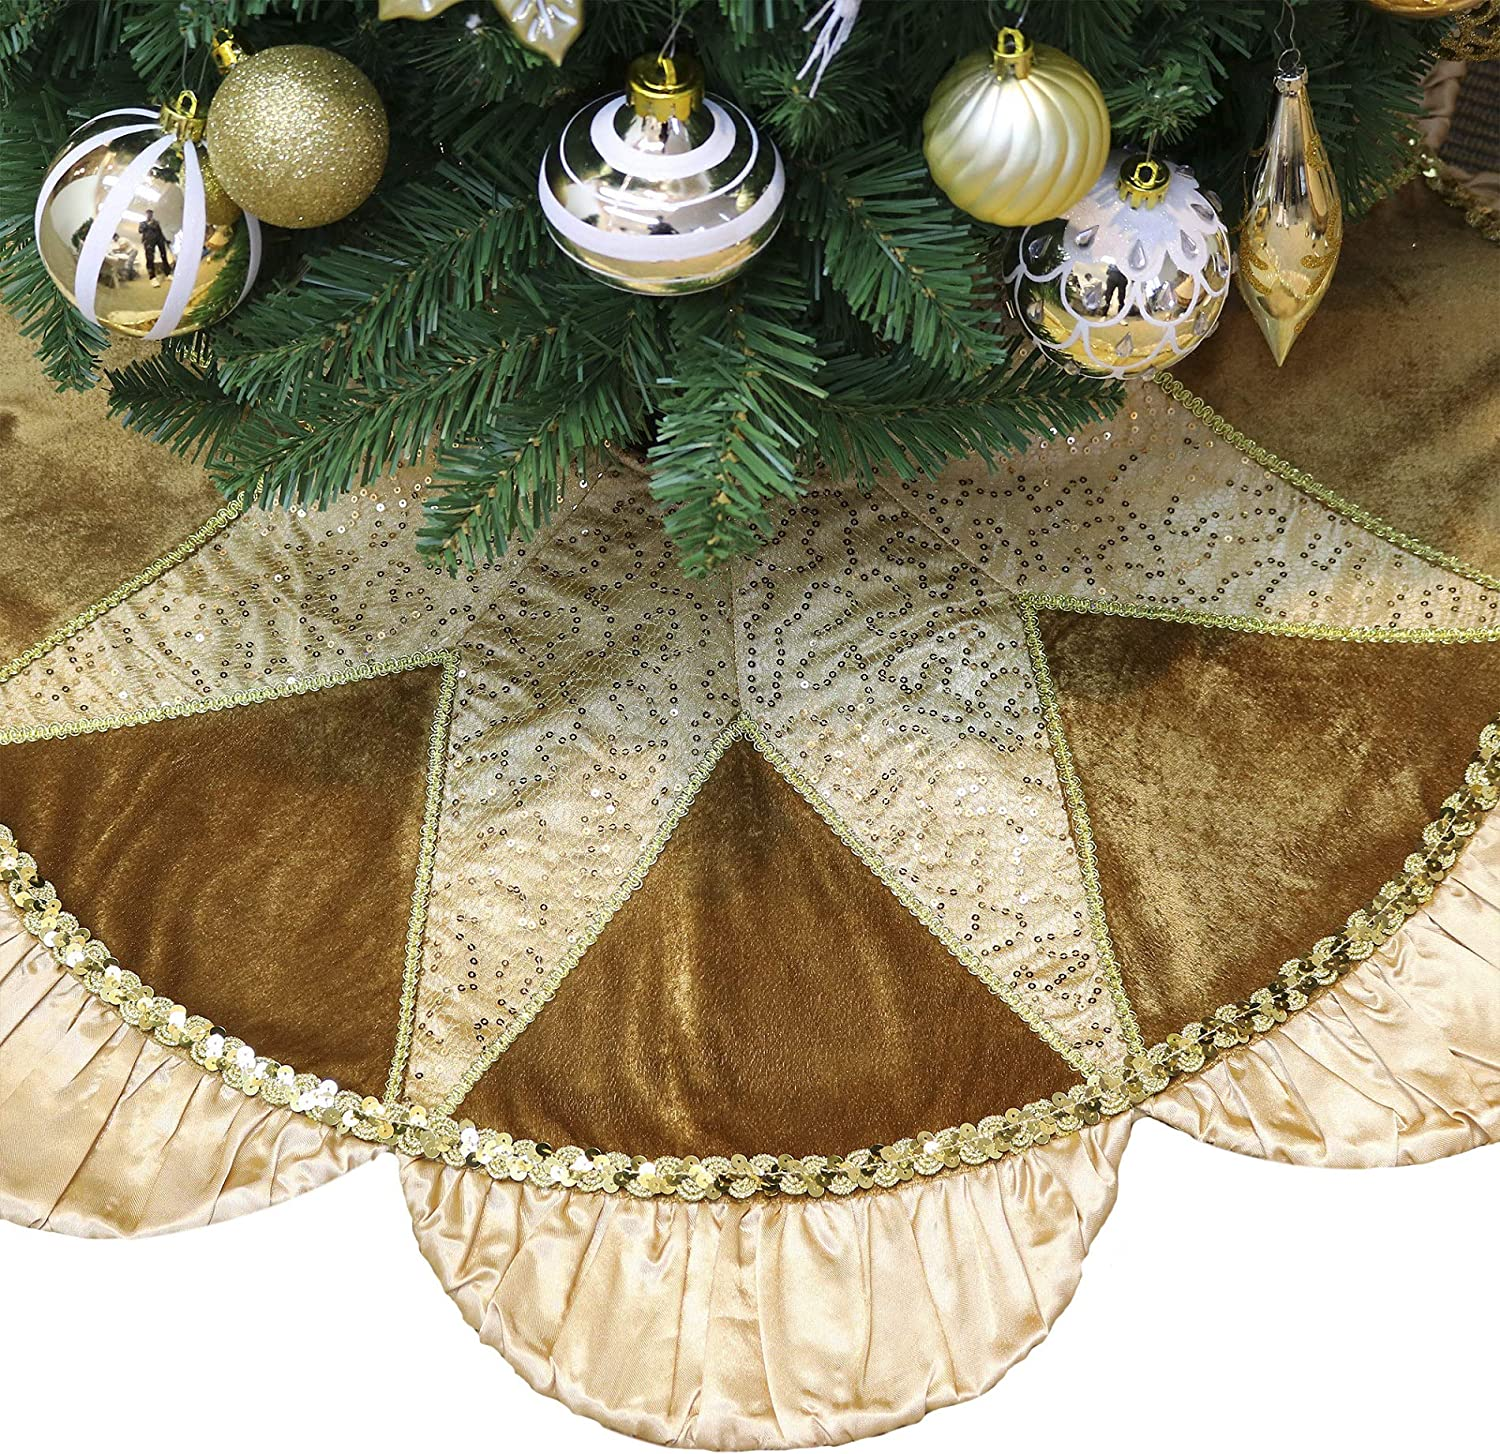 Valery Madelyn 48 Inch Luxury Copper Gold Christmas Tree Skirt Decorations with Sequins and Ruffle, Applique Patchwork, Themed with Christmas Tree Decor (Not Included)